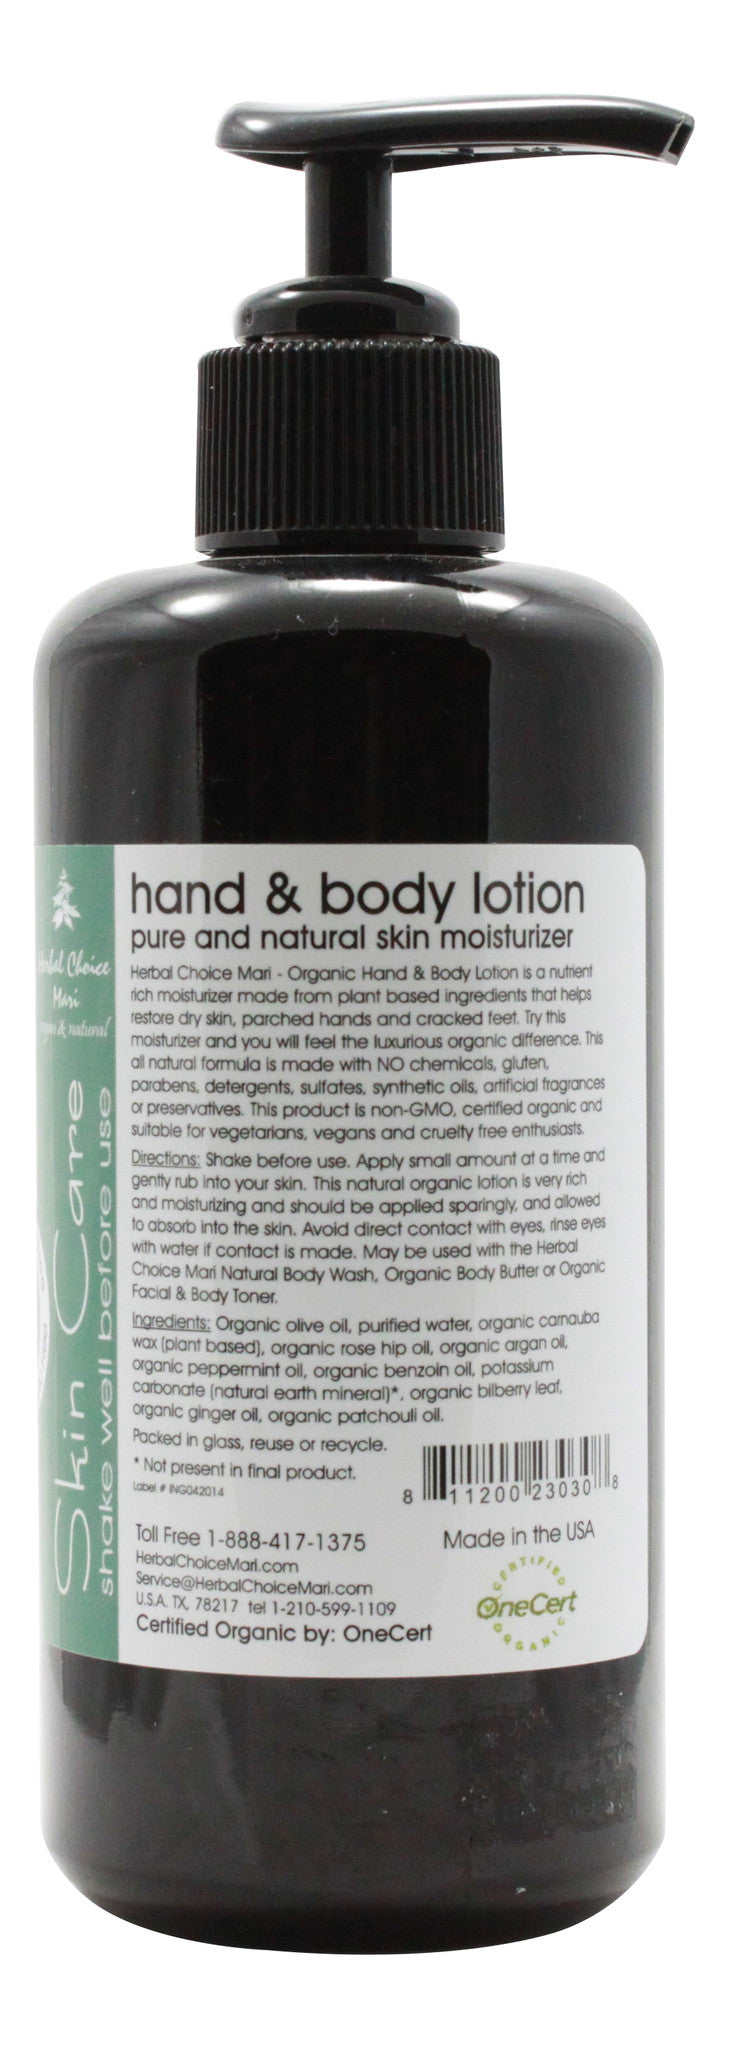 Organic Hand & Body Lotion - Peppermint & Ginger - 6.8 oz - Info